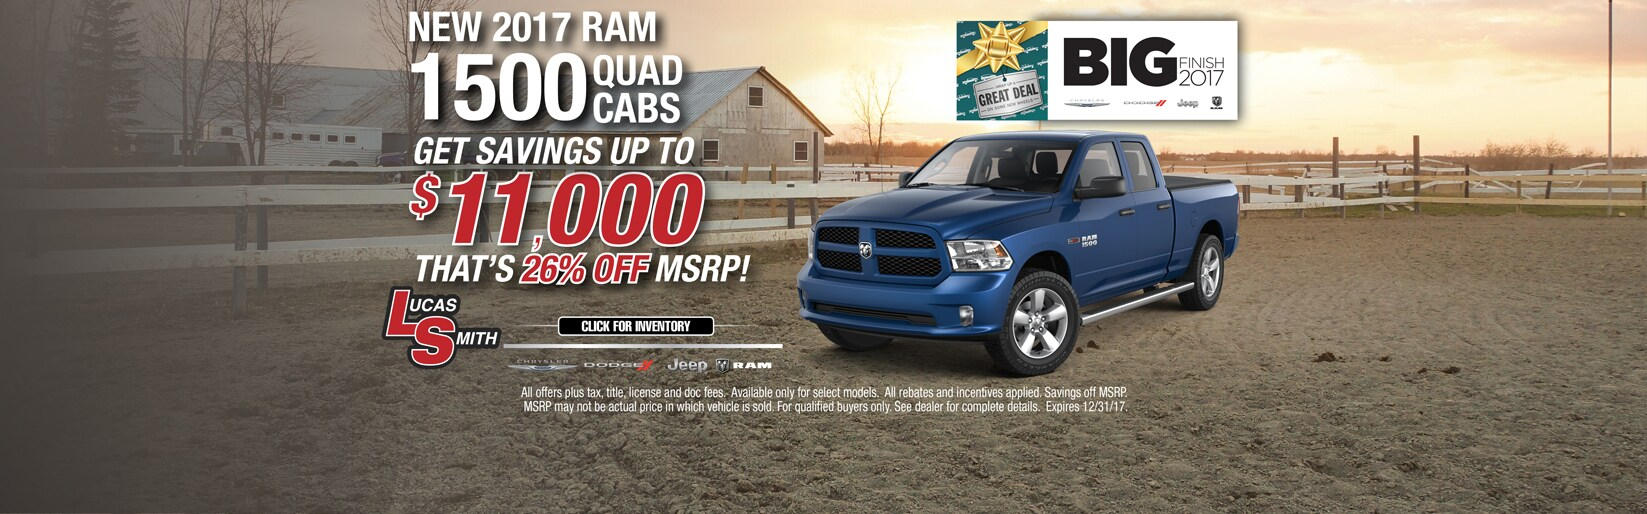 2017 RAM 1500 Quad Cab December Deals